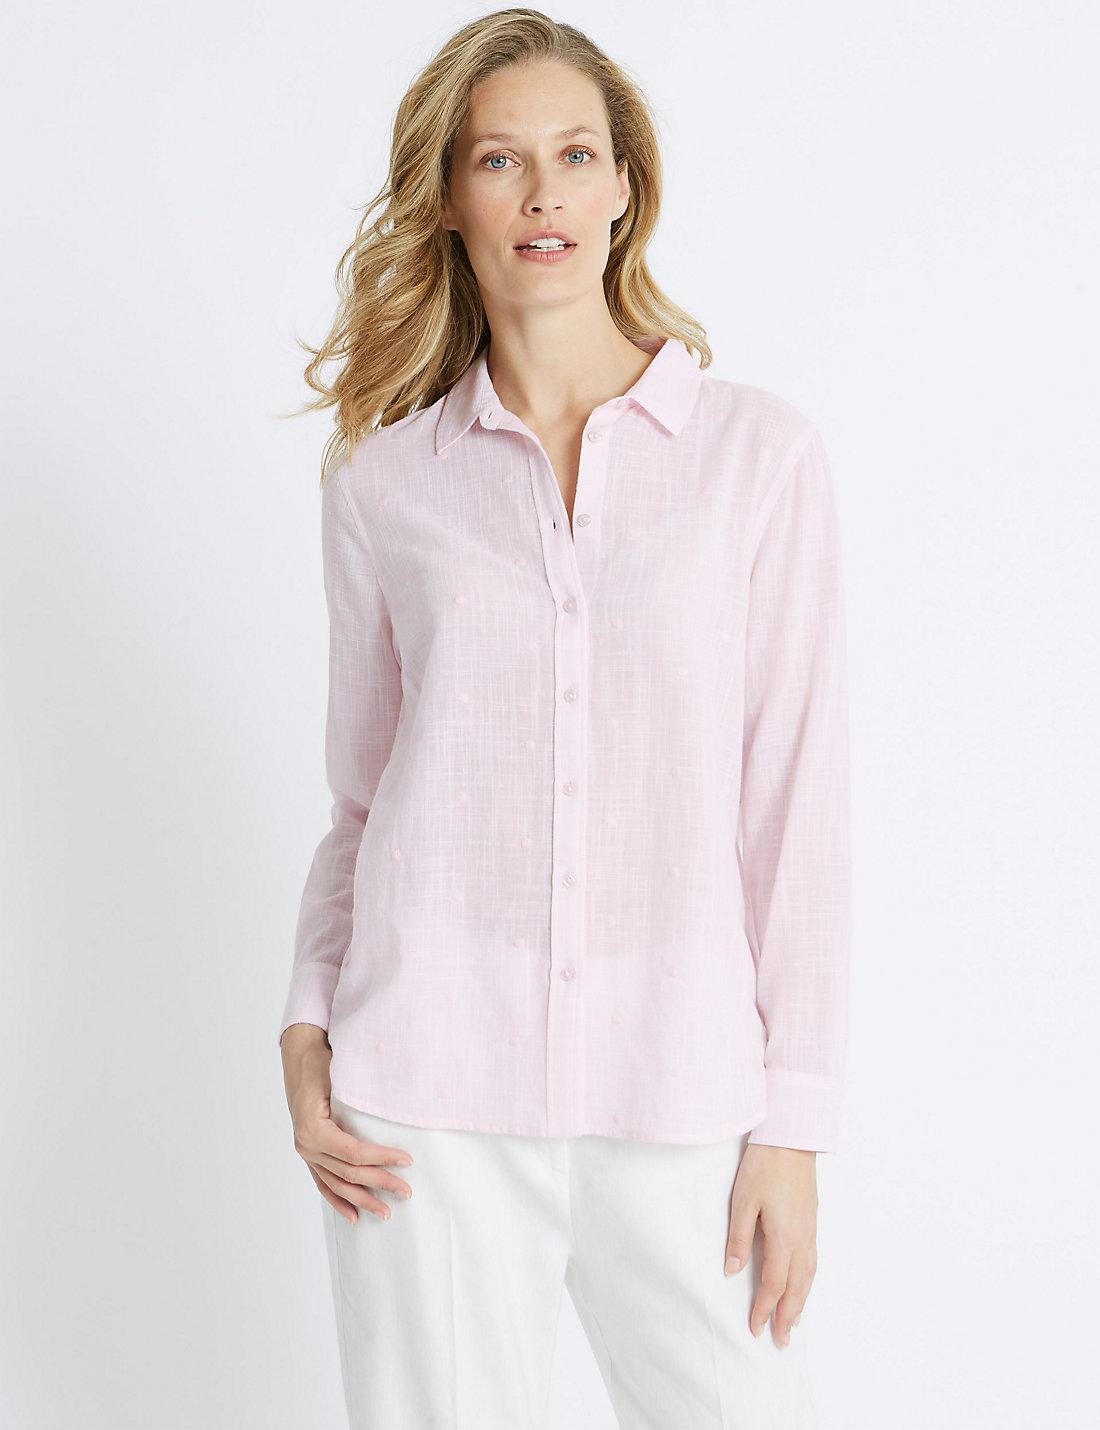 Marks & Spencer Pure Cotton Embroidered Long Sleeve Shirt - - 6 Free Shipping Ebay kE3trPB